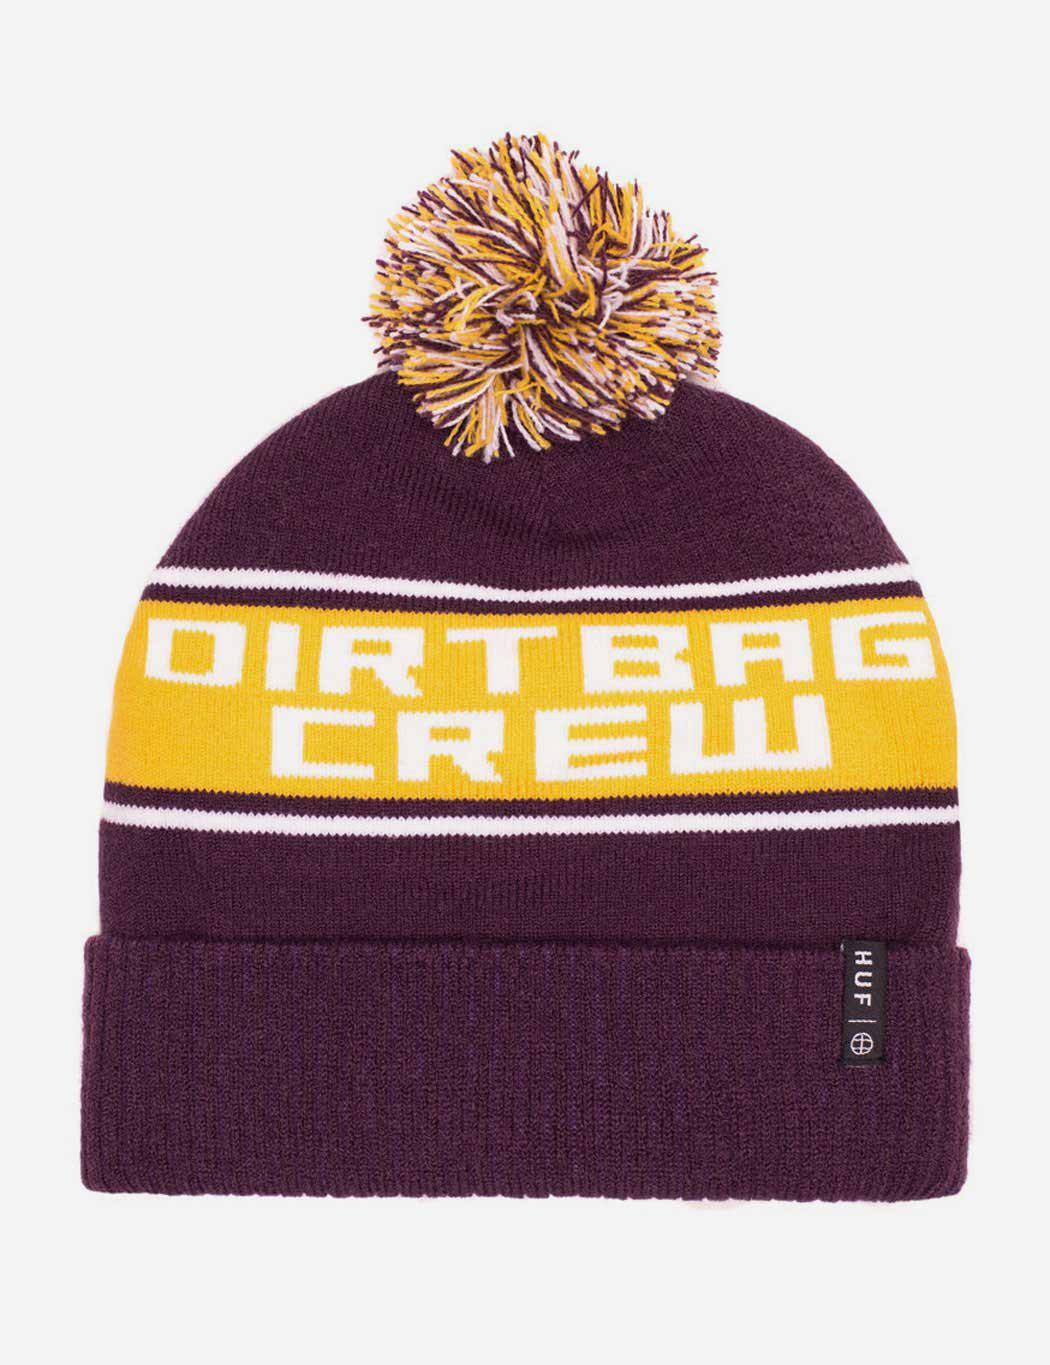 bf70a51113e Lyst - Huf Go Dbc Beanie Hat in Purple for Men